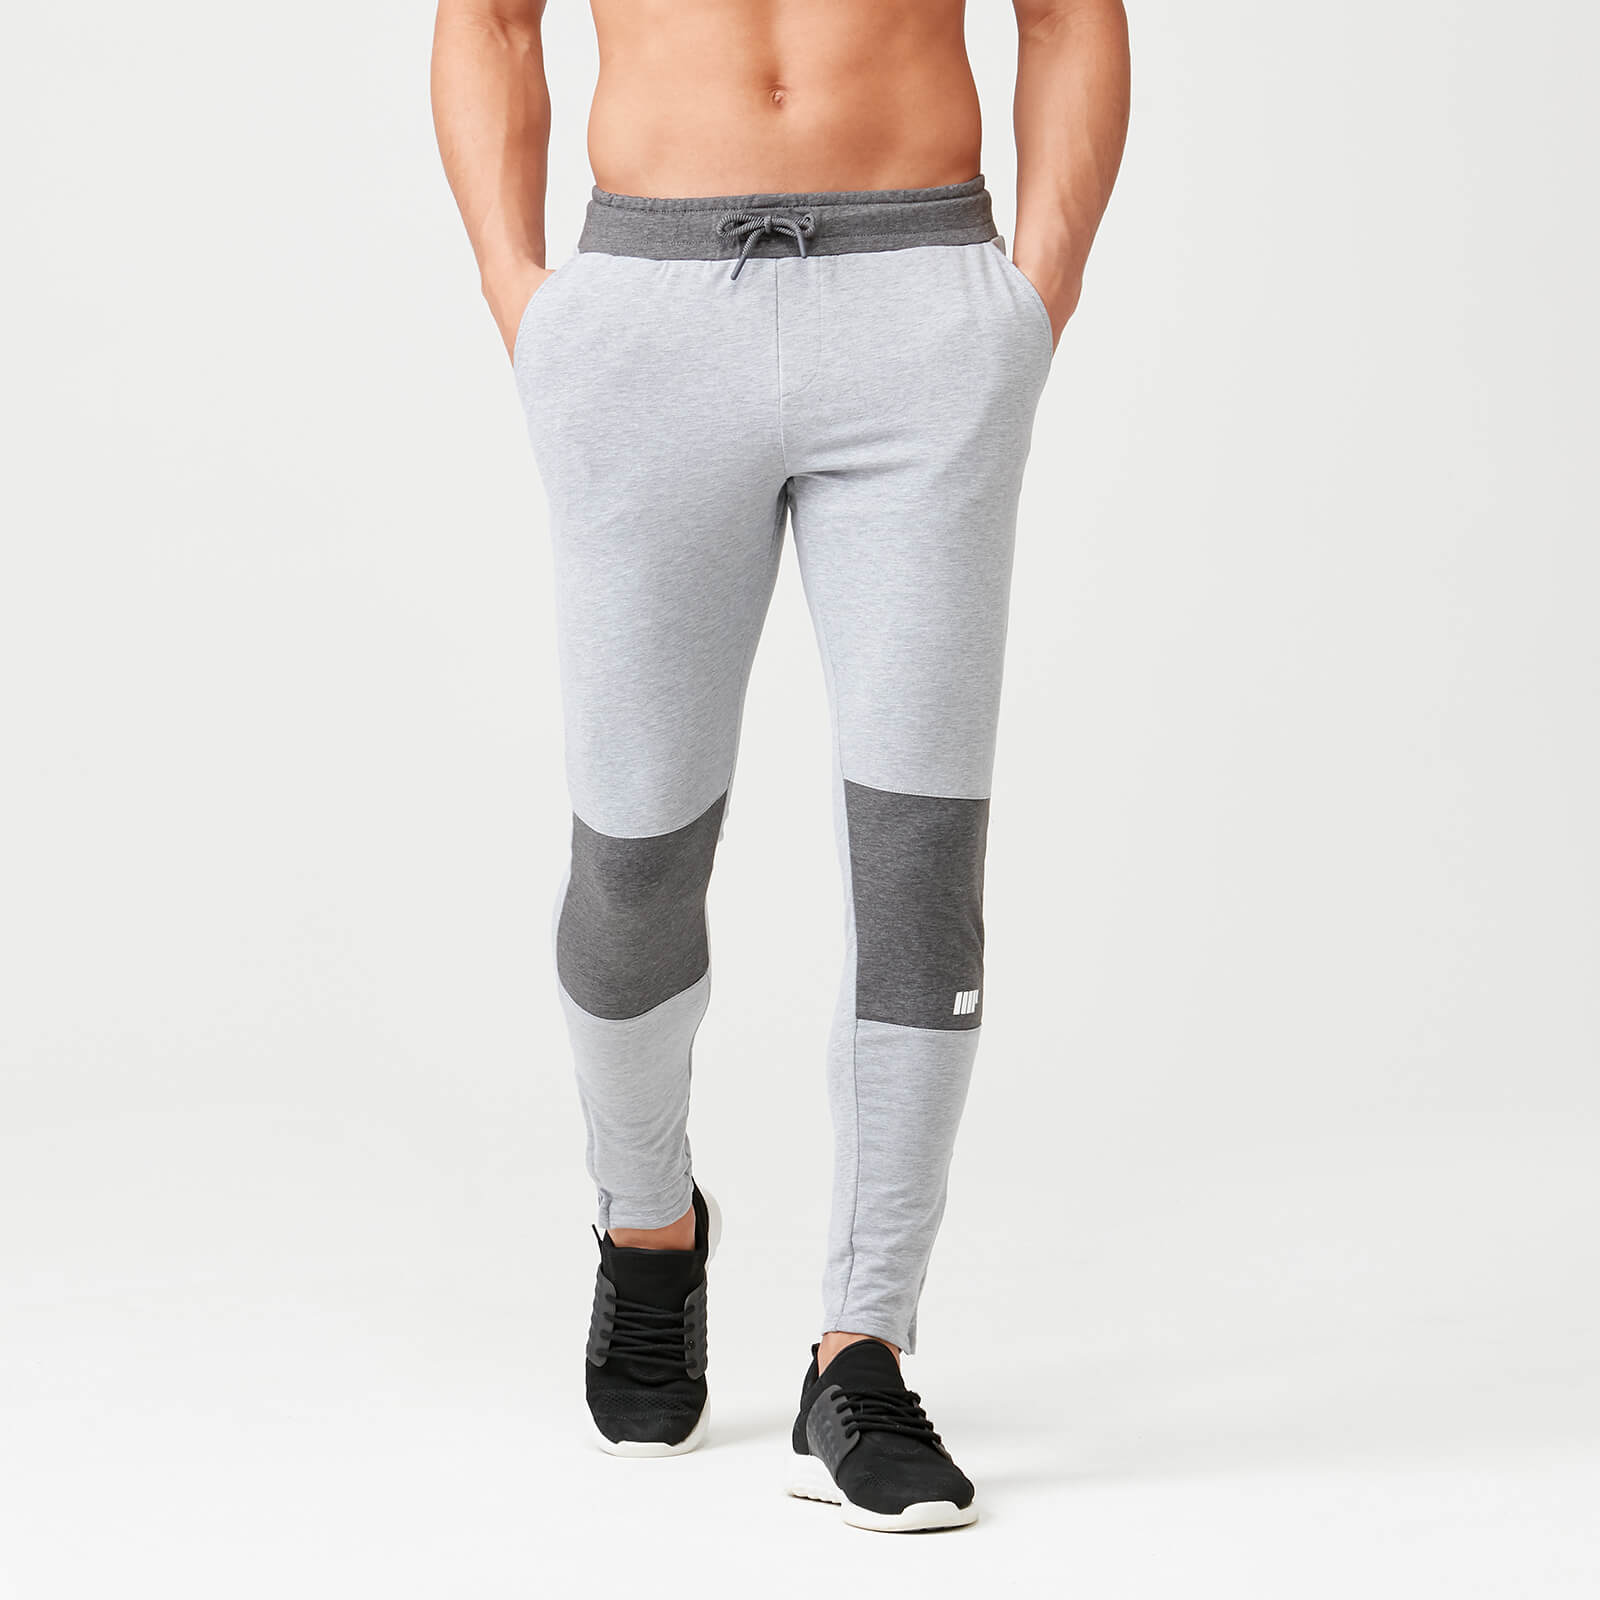 Superlite Slim Fit Joggers - Grey Marl - M